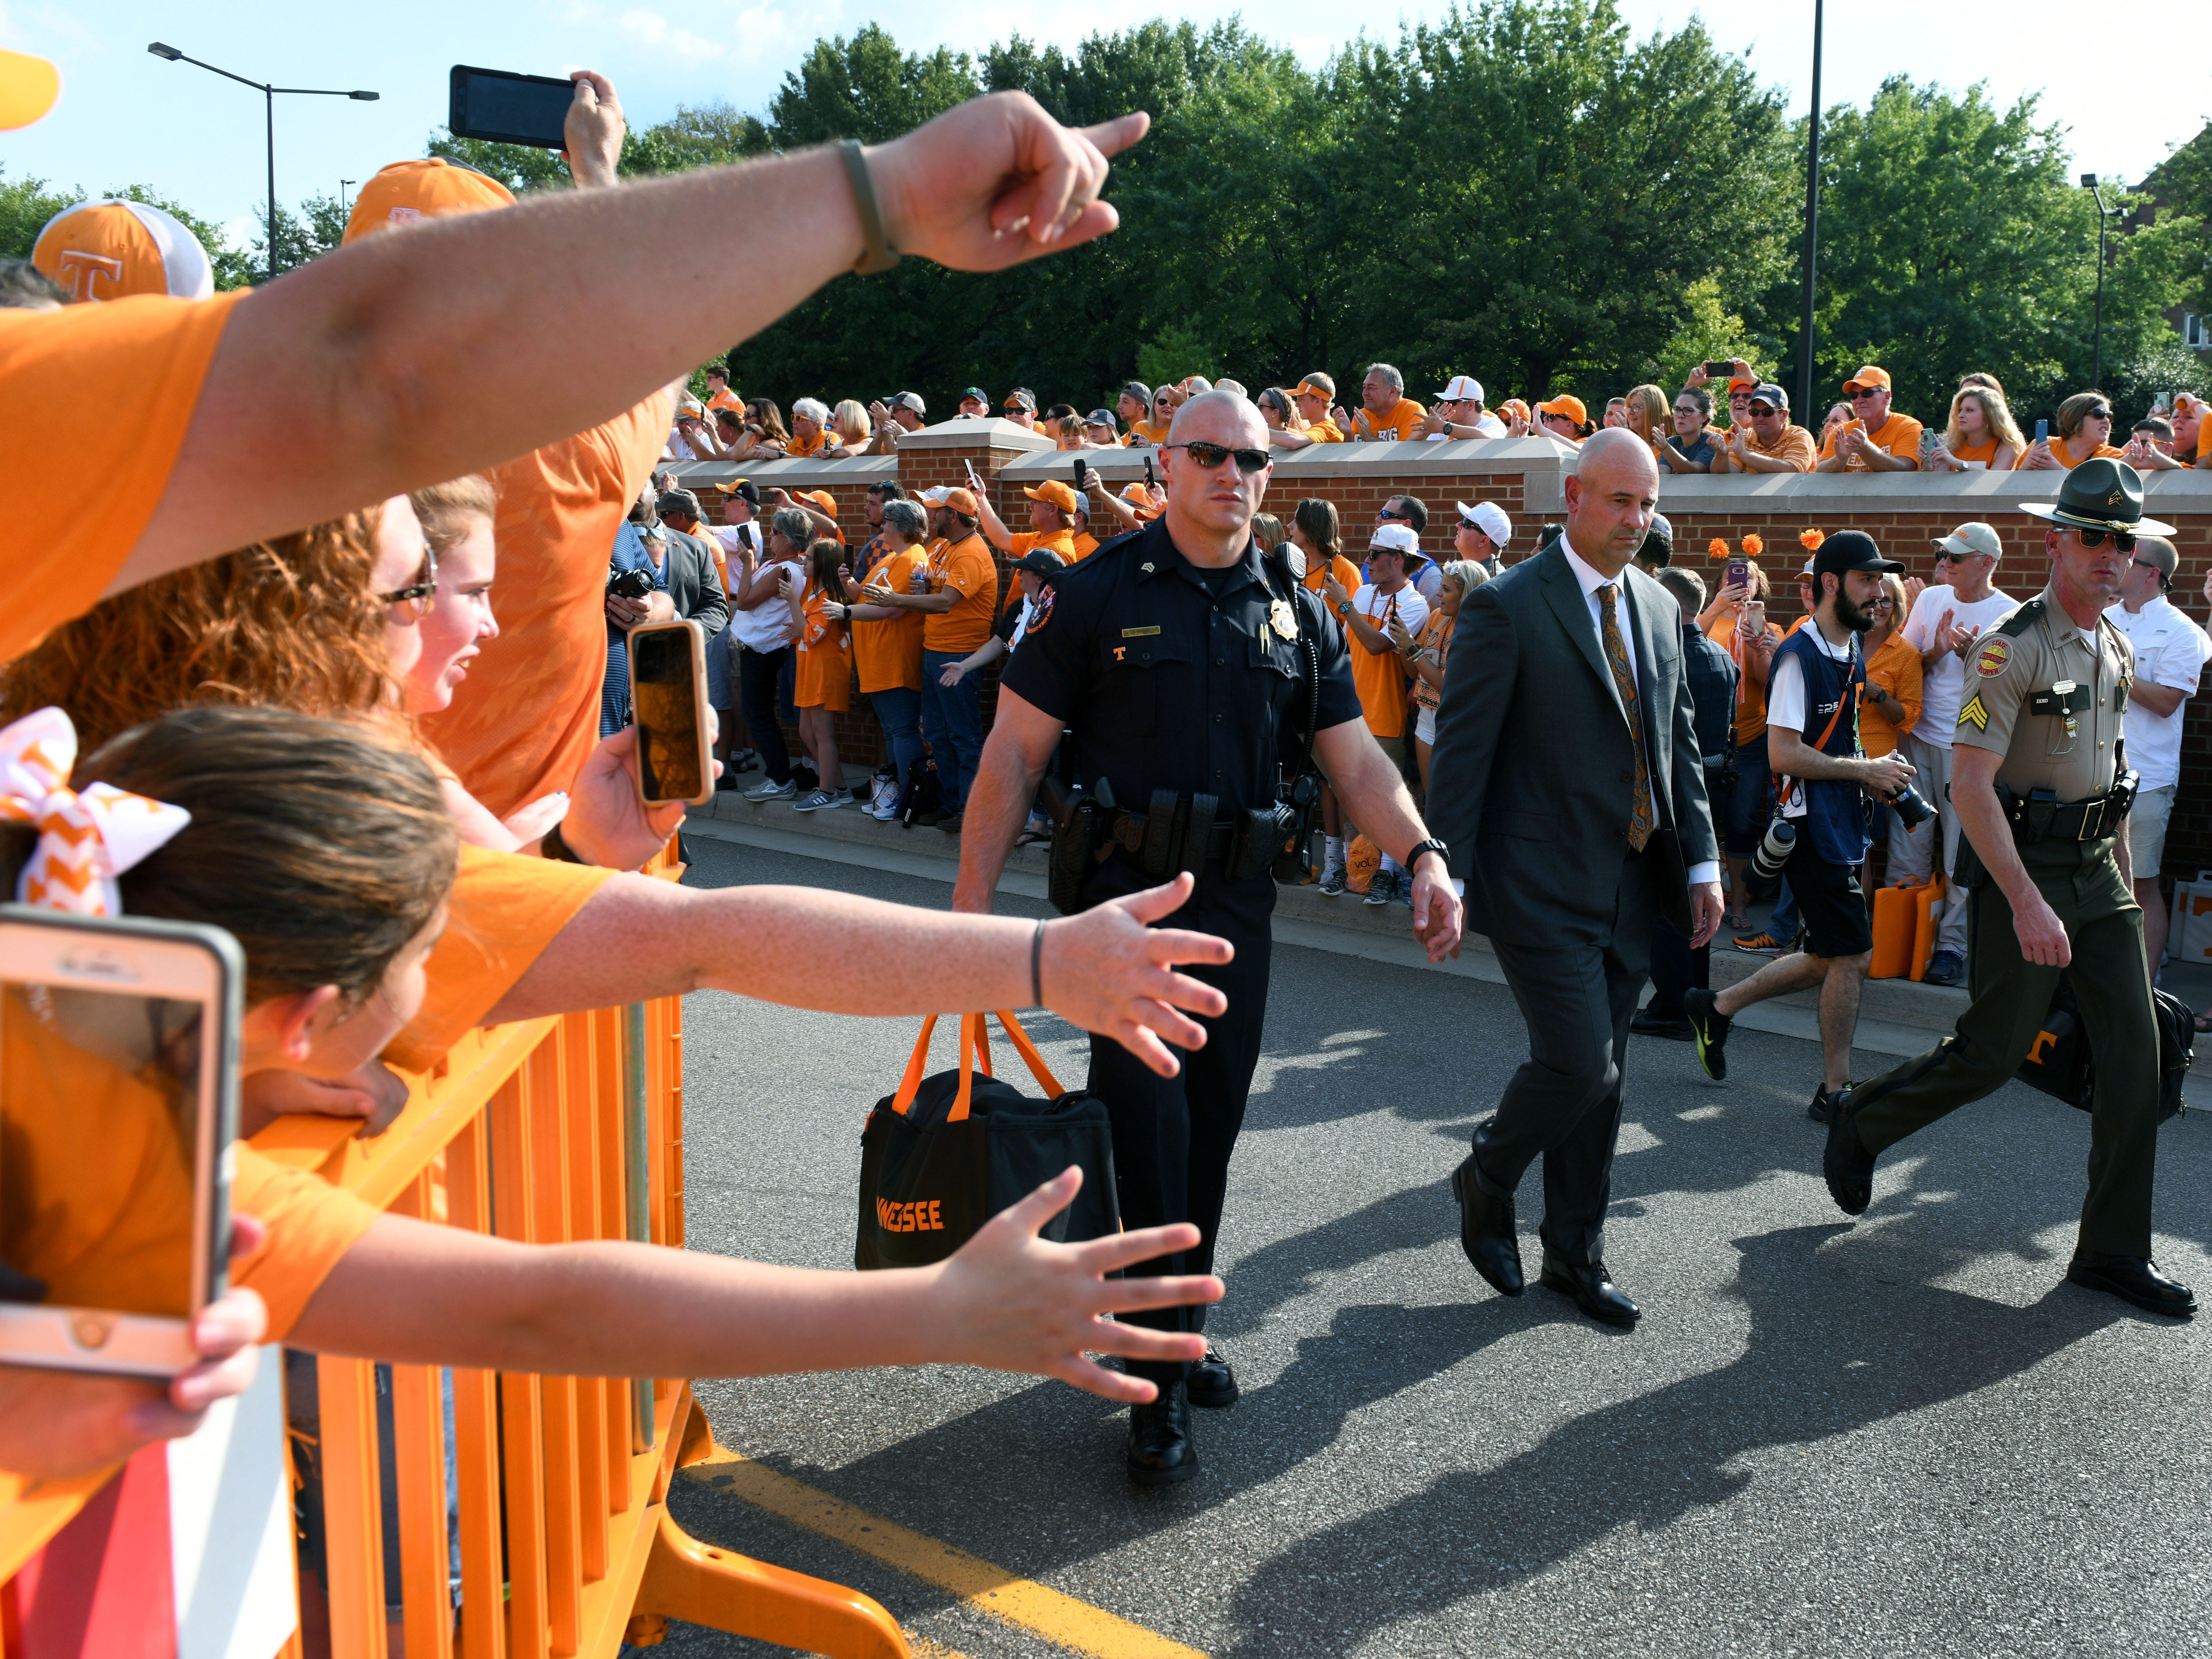 Tennessee Head Coach Jeremy Pruitt during the Vol Walk  before their game against Florida in Neyland Stadium Saturday, September 22, 2018 in Knoxville, Tenn.